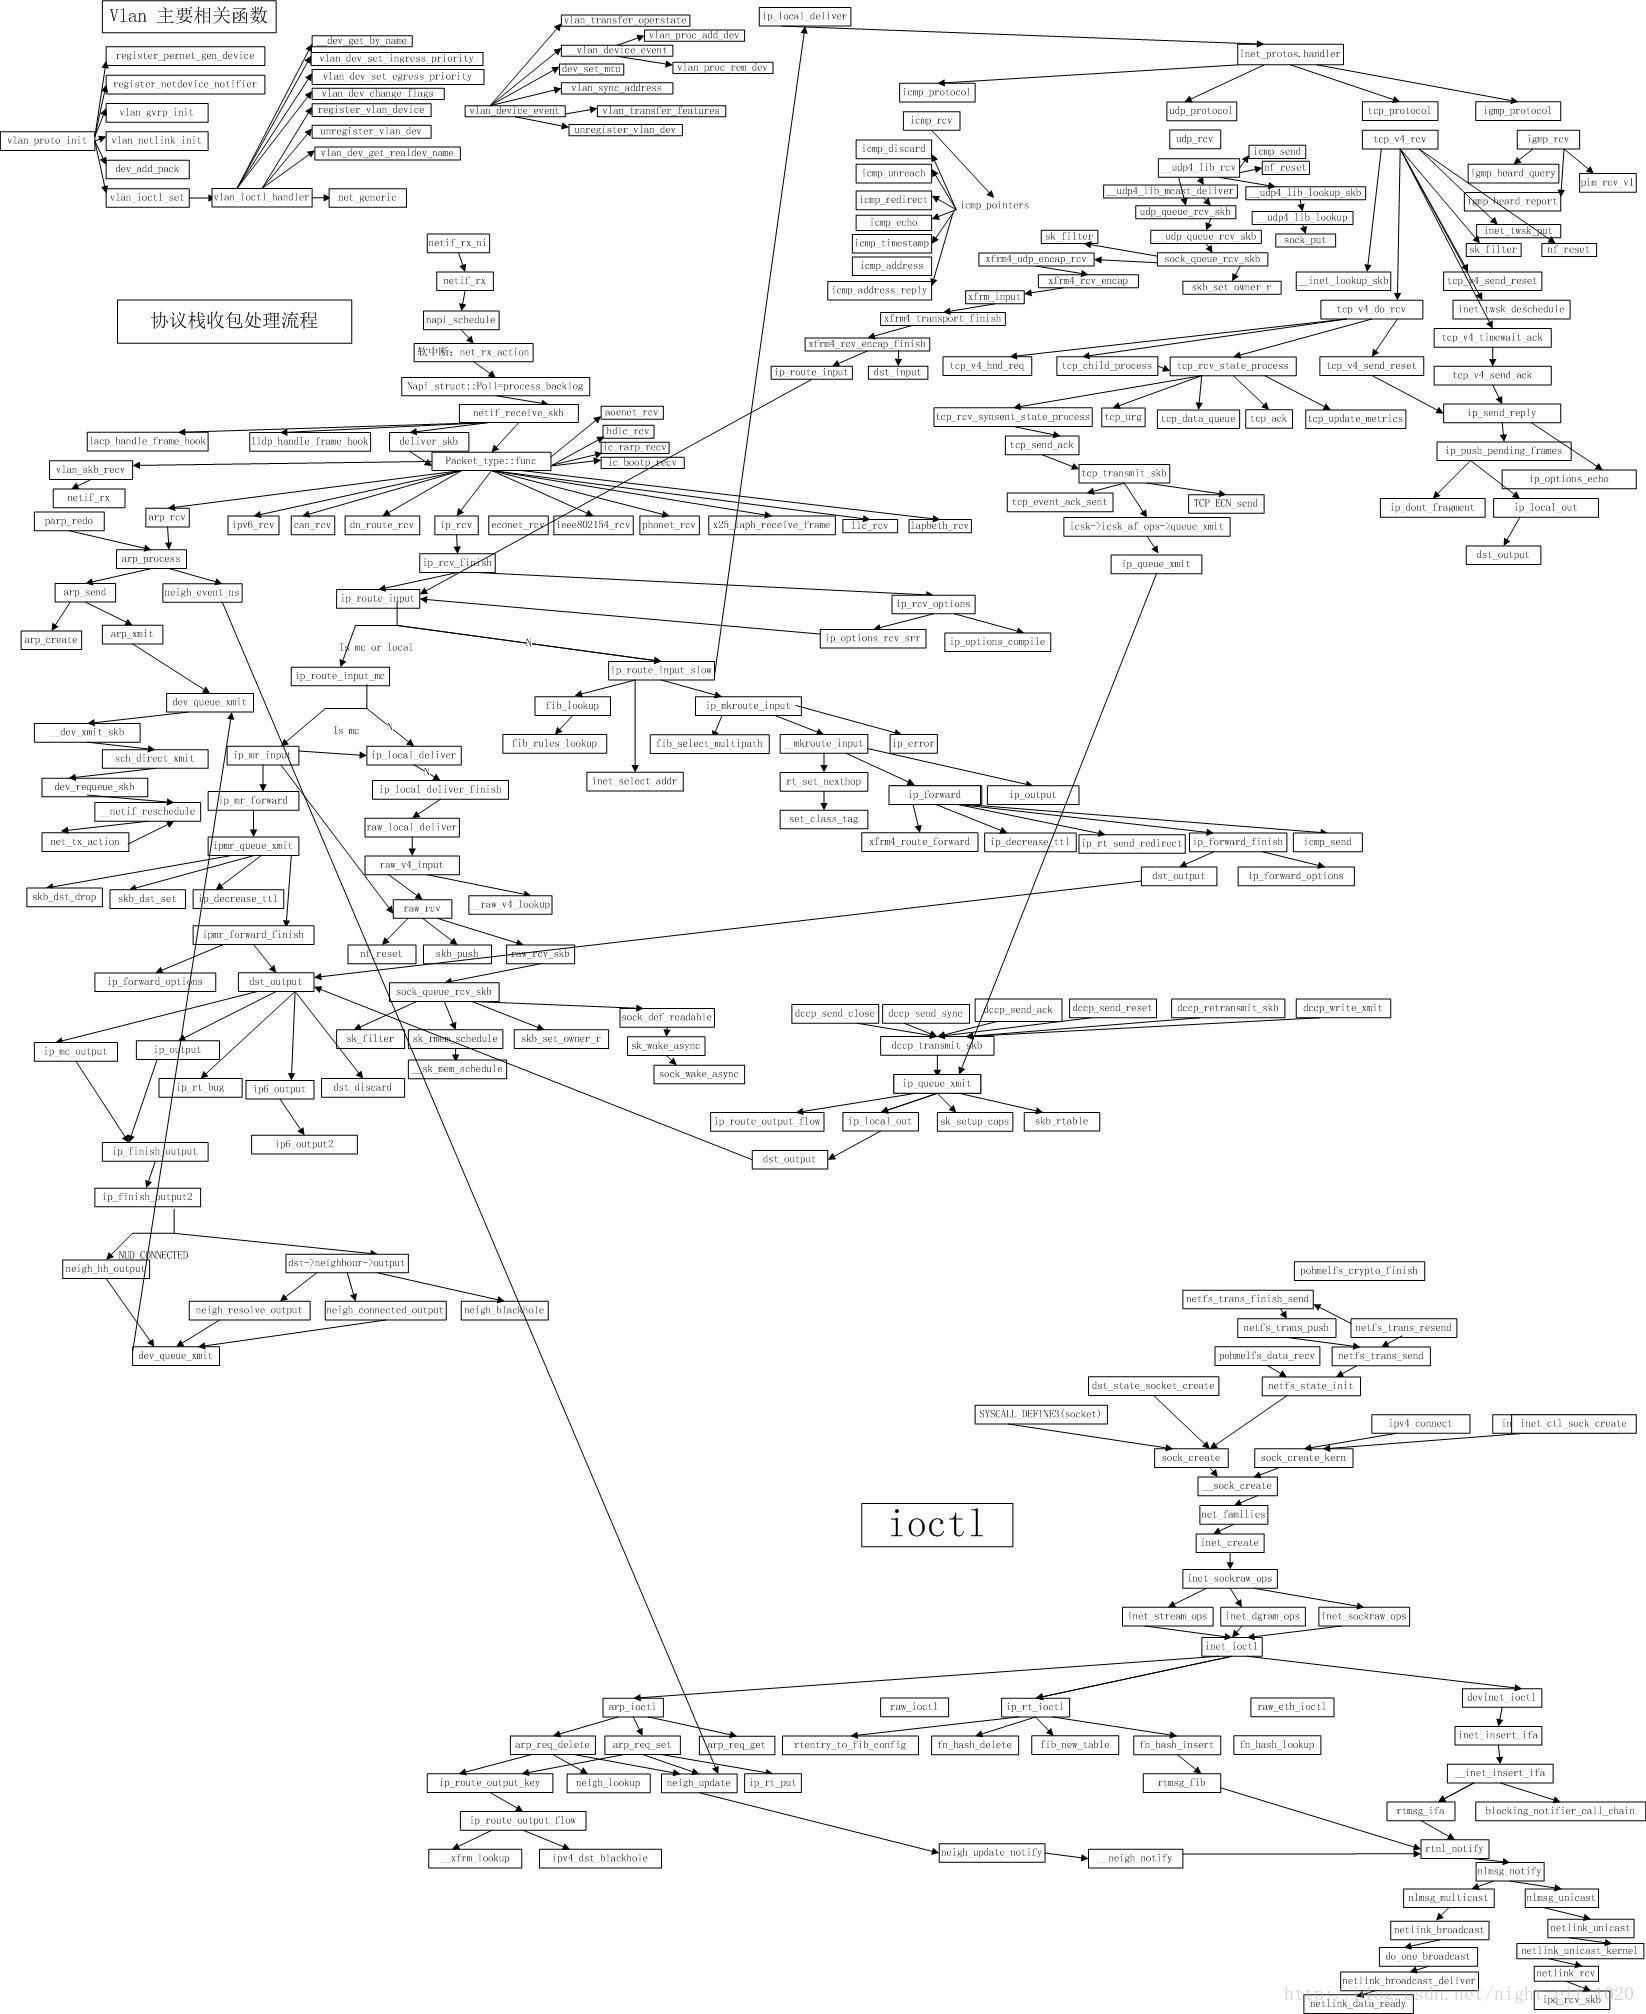 Network subsystem in Linux